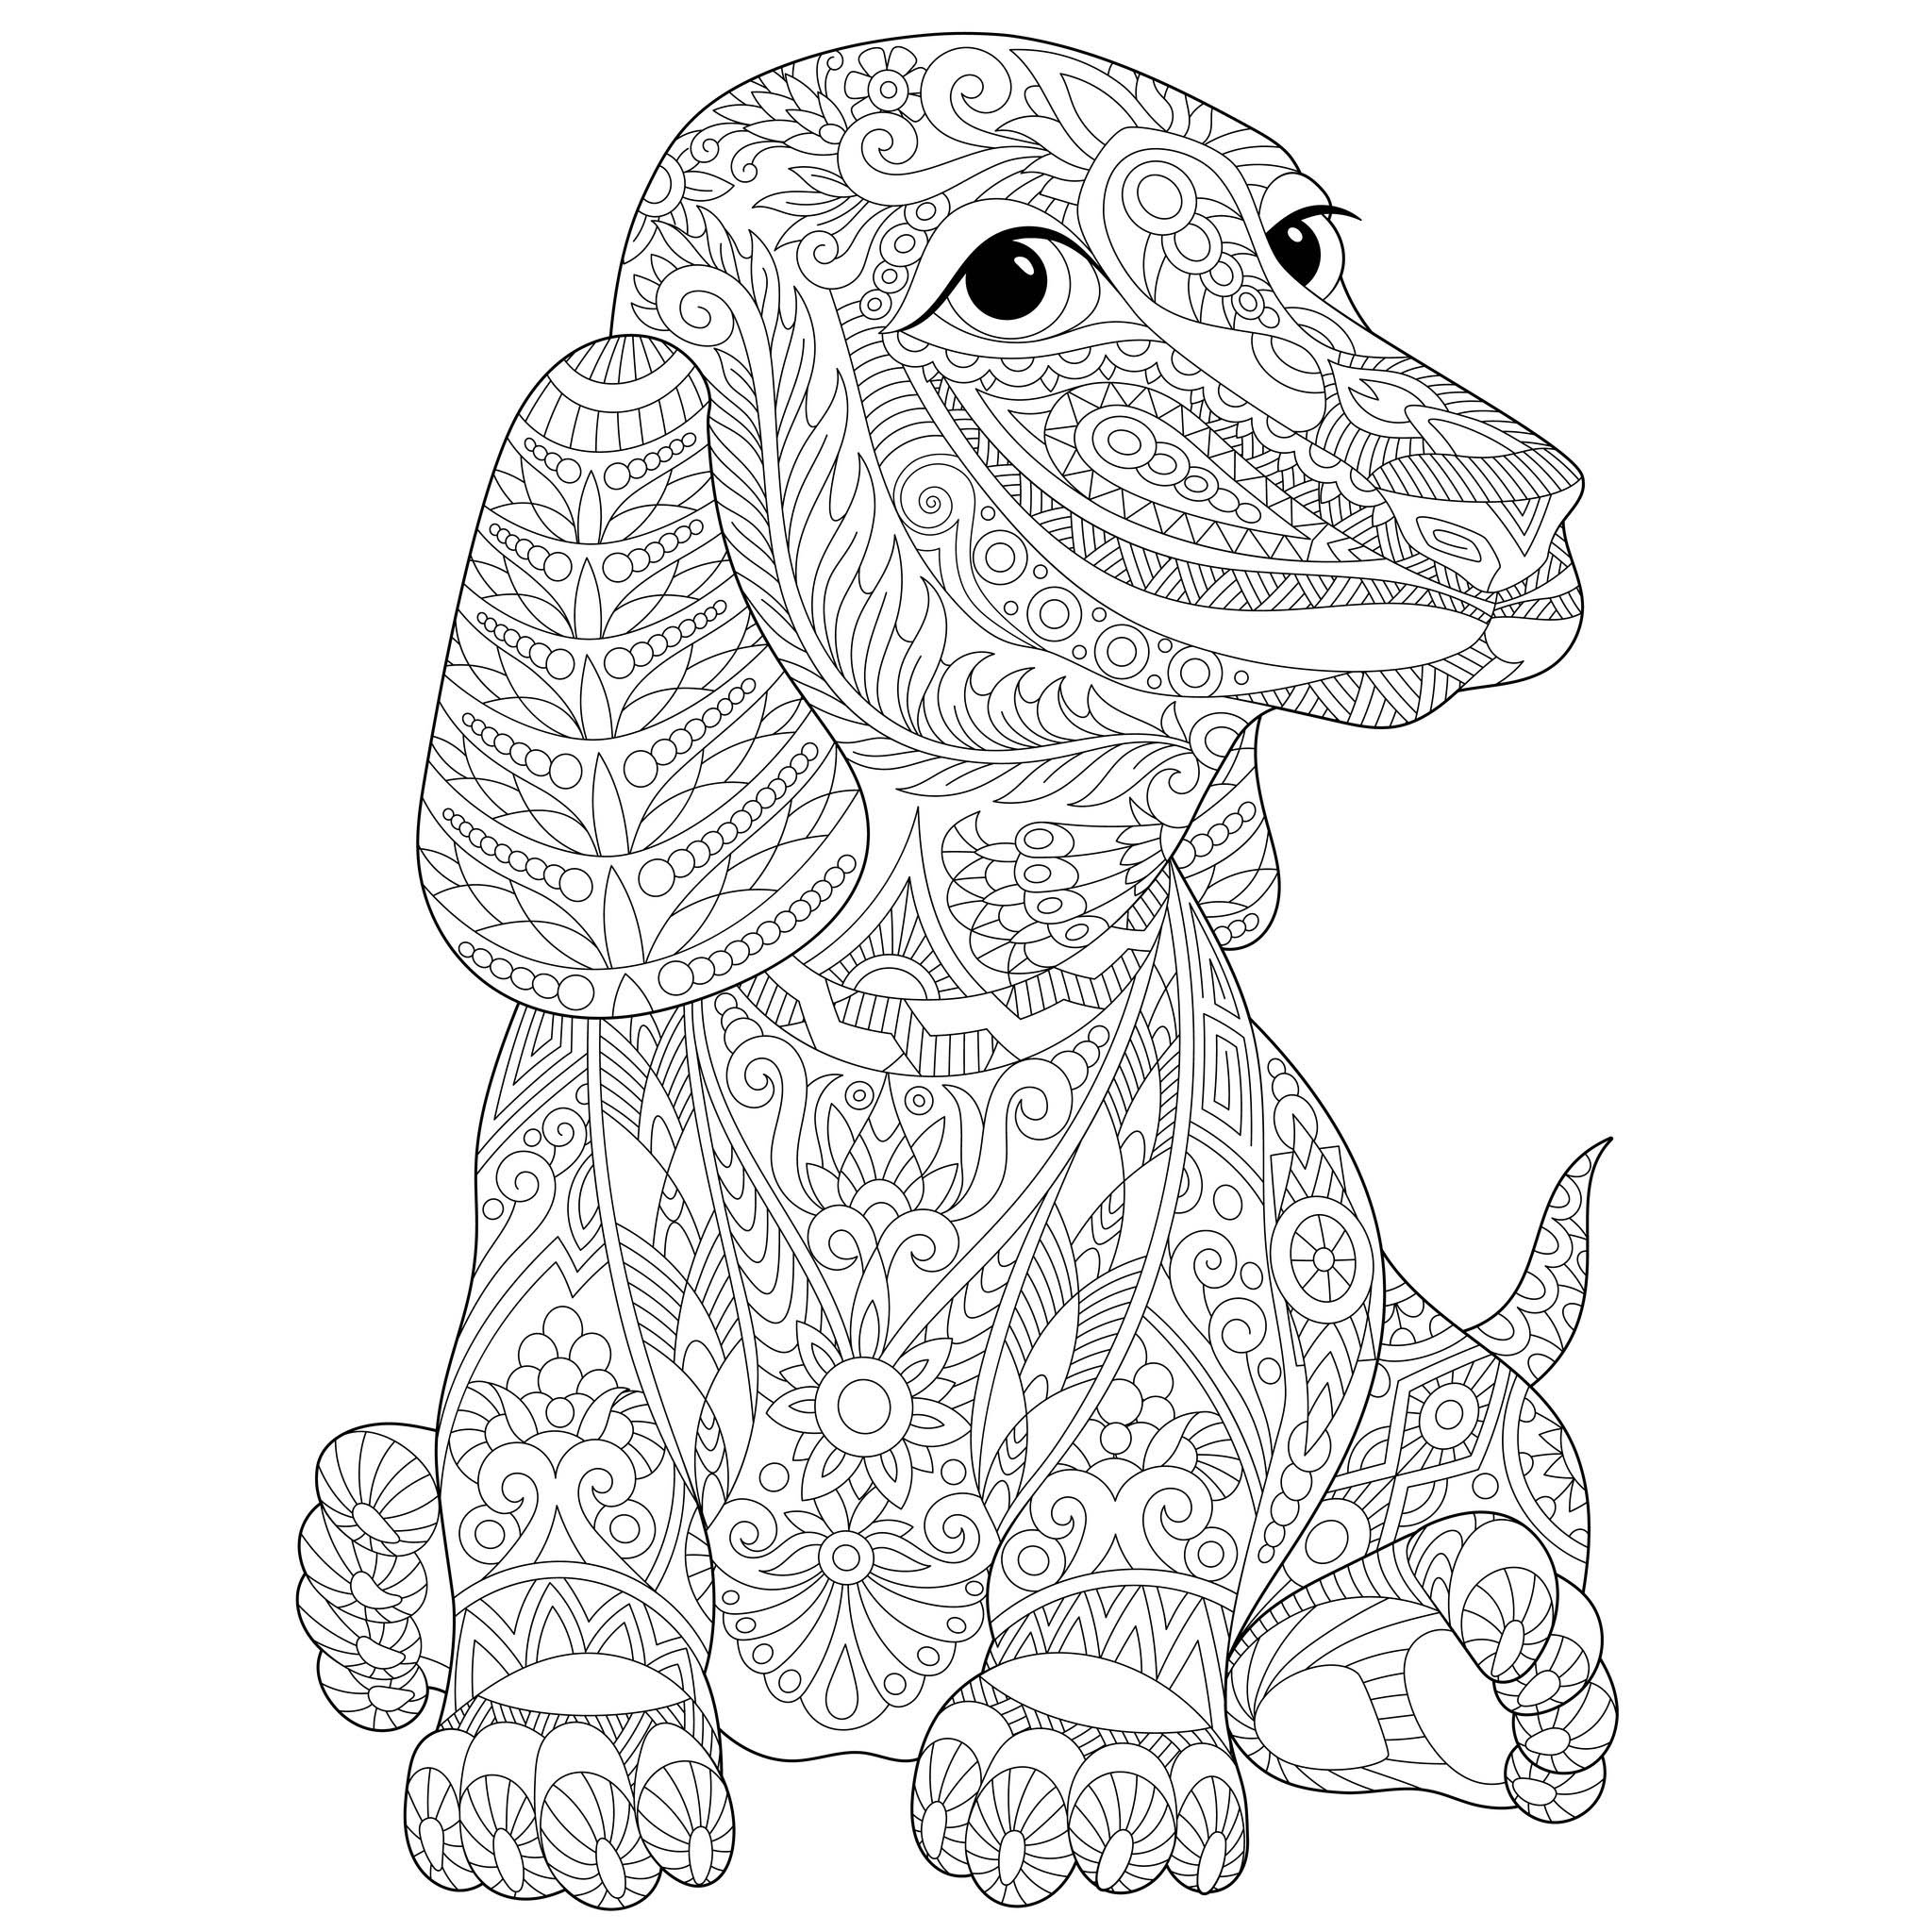 dog coloring pictures printable dog to color for kids dogs kids coloring pages printable pictures coloring dog